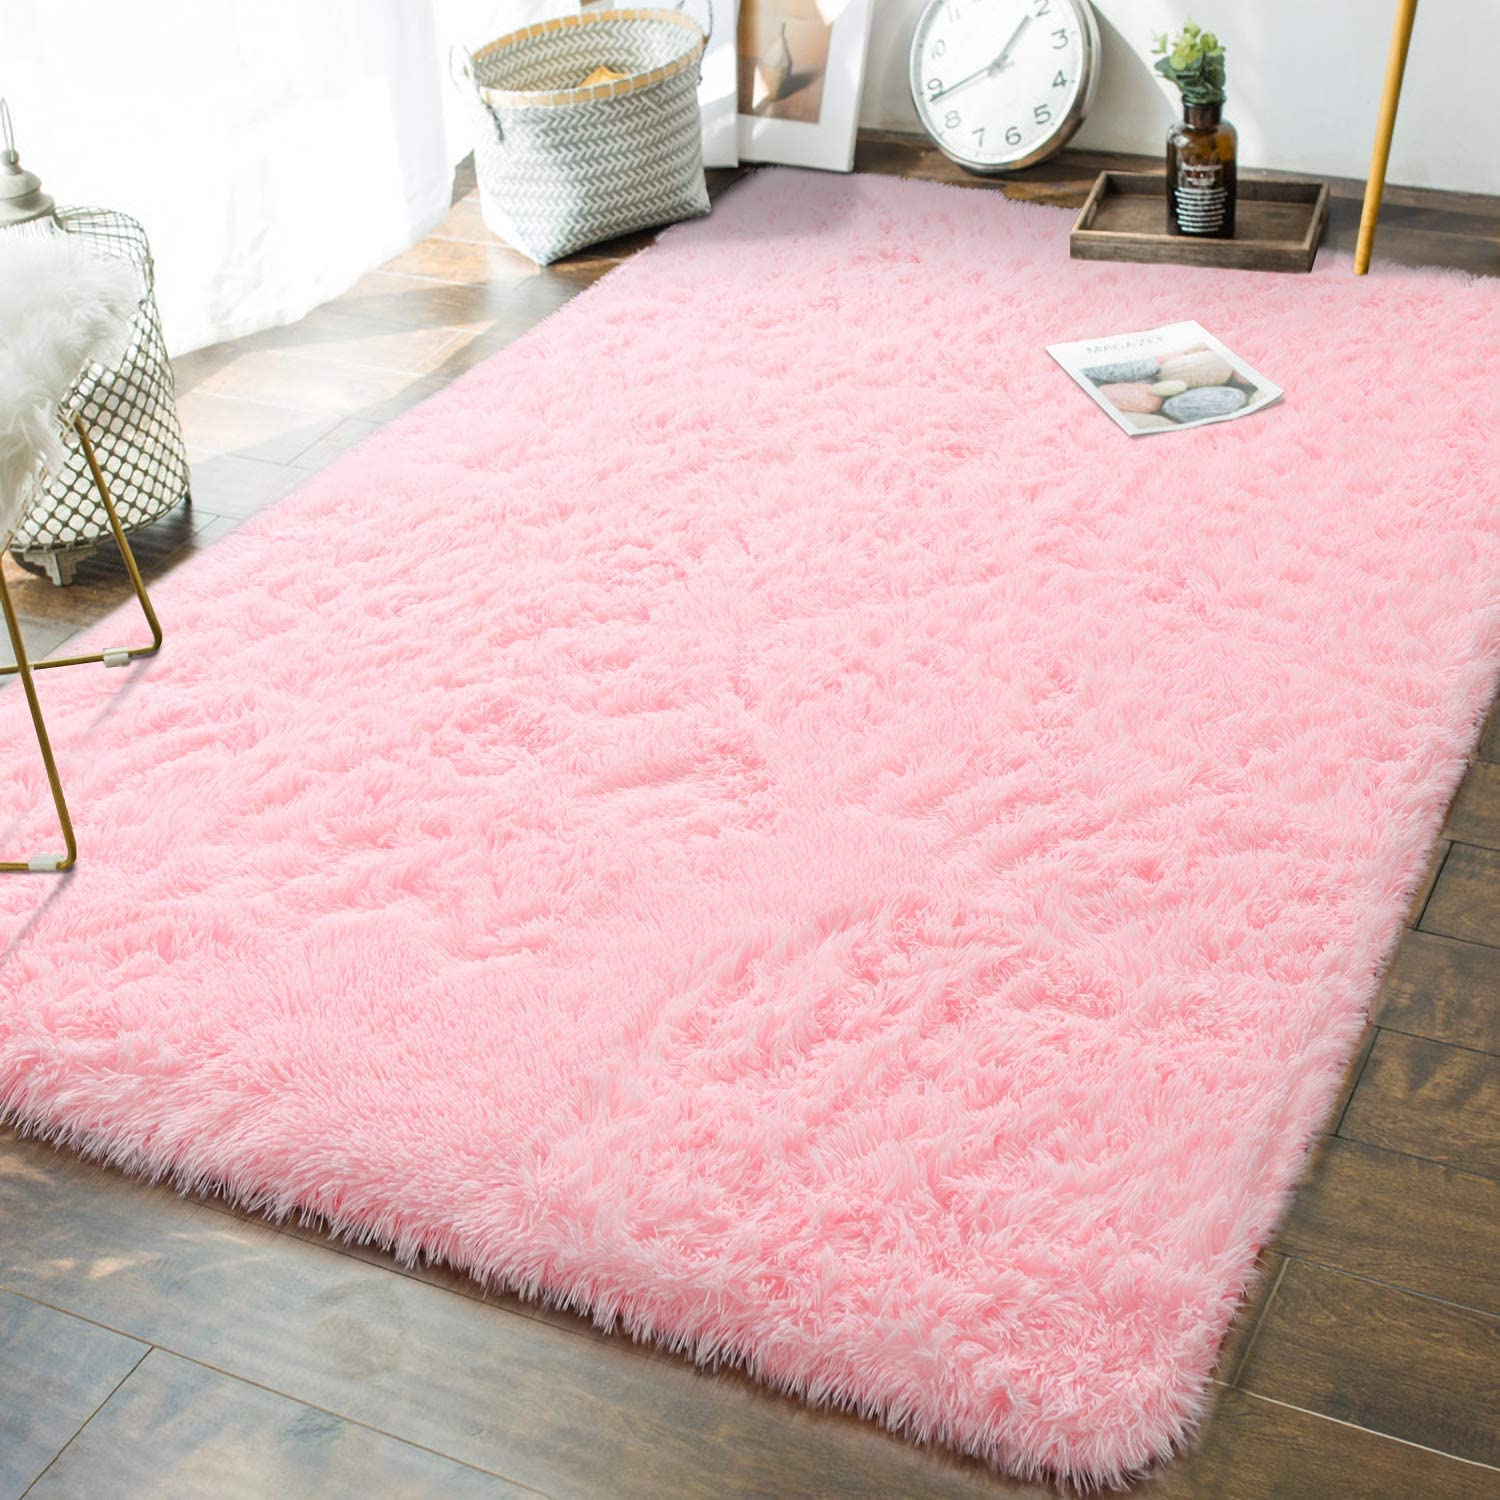 Andecor Soft Fluffy Bedroom Rugs - 5 x 8 Feet Indoor Shaggy Plush Area Rug for Boys Girls Kids Baby College Dorm Living Room Home Decor Floor Carpet, Baby Pink